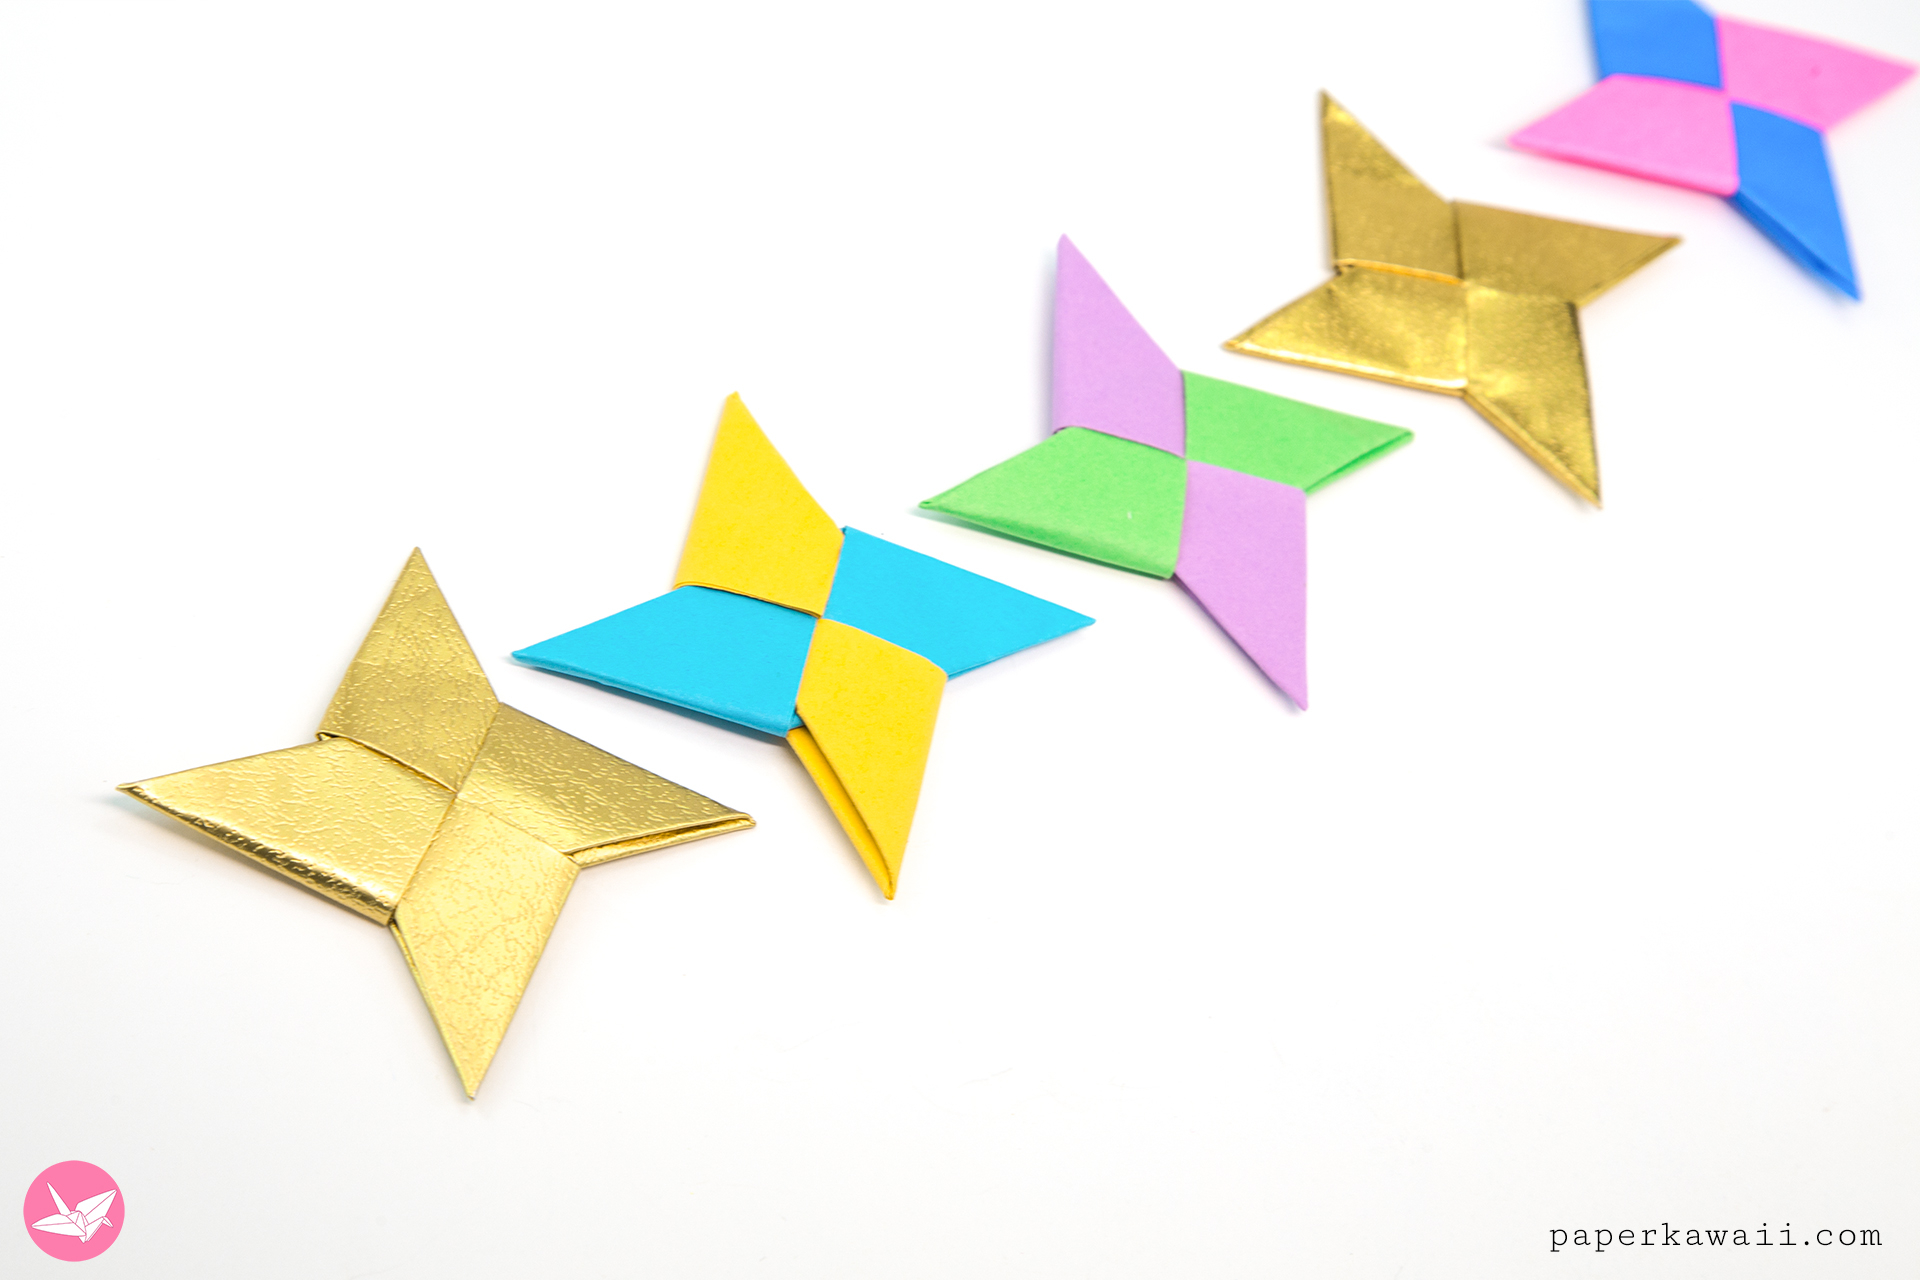 Easy Origami Diagrams Origami Star Diagrams Image Search Results Your Wiring Diagram